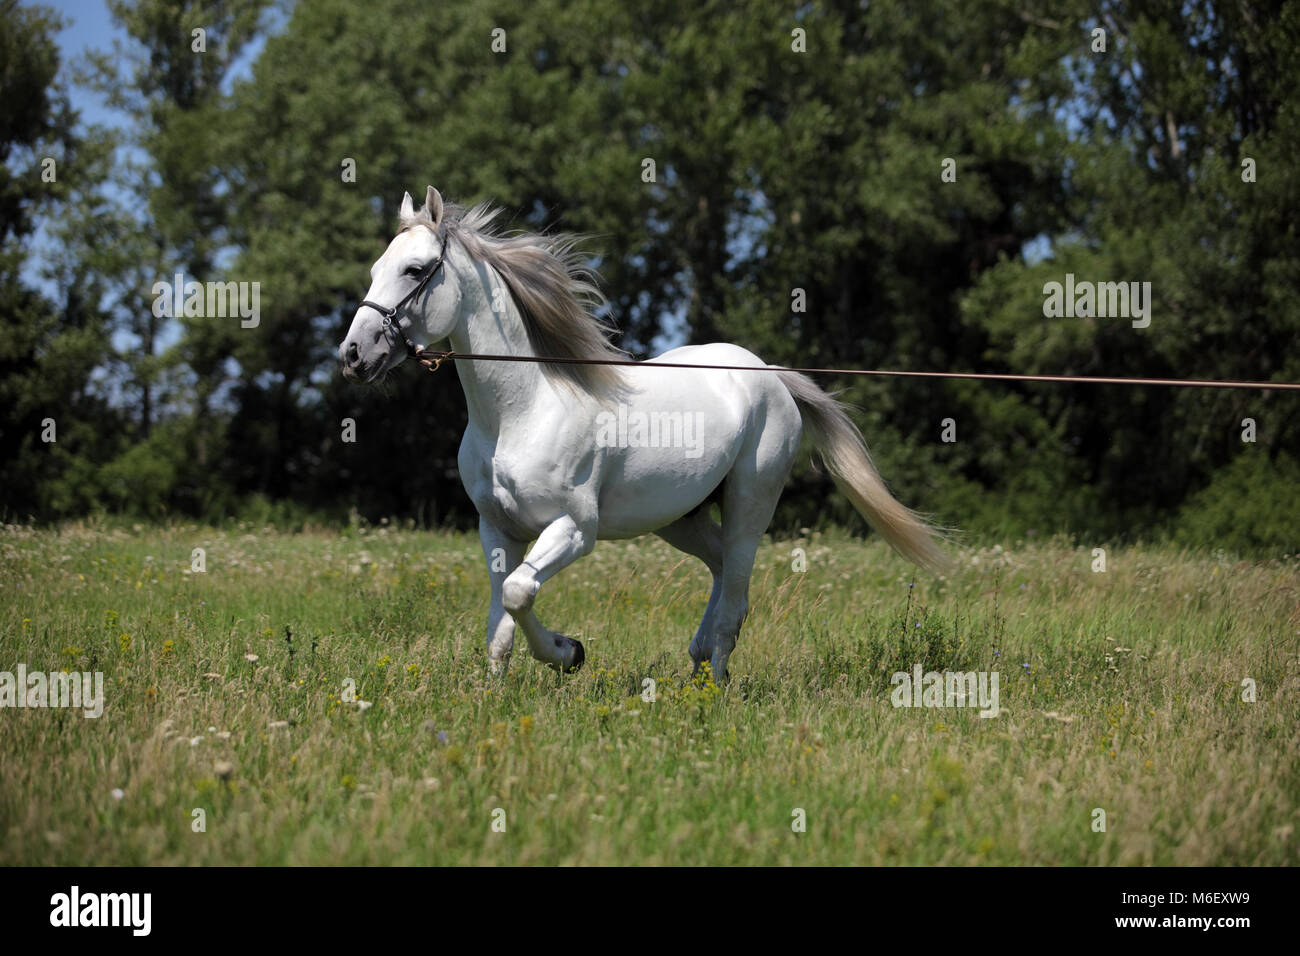 Andalusian horse white horse galloping on a meadow - Stock Image